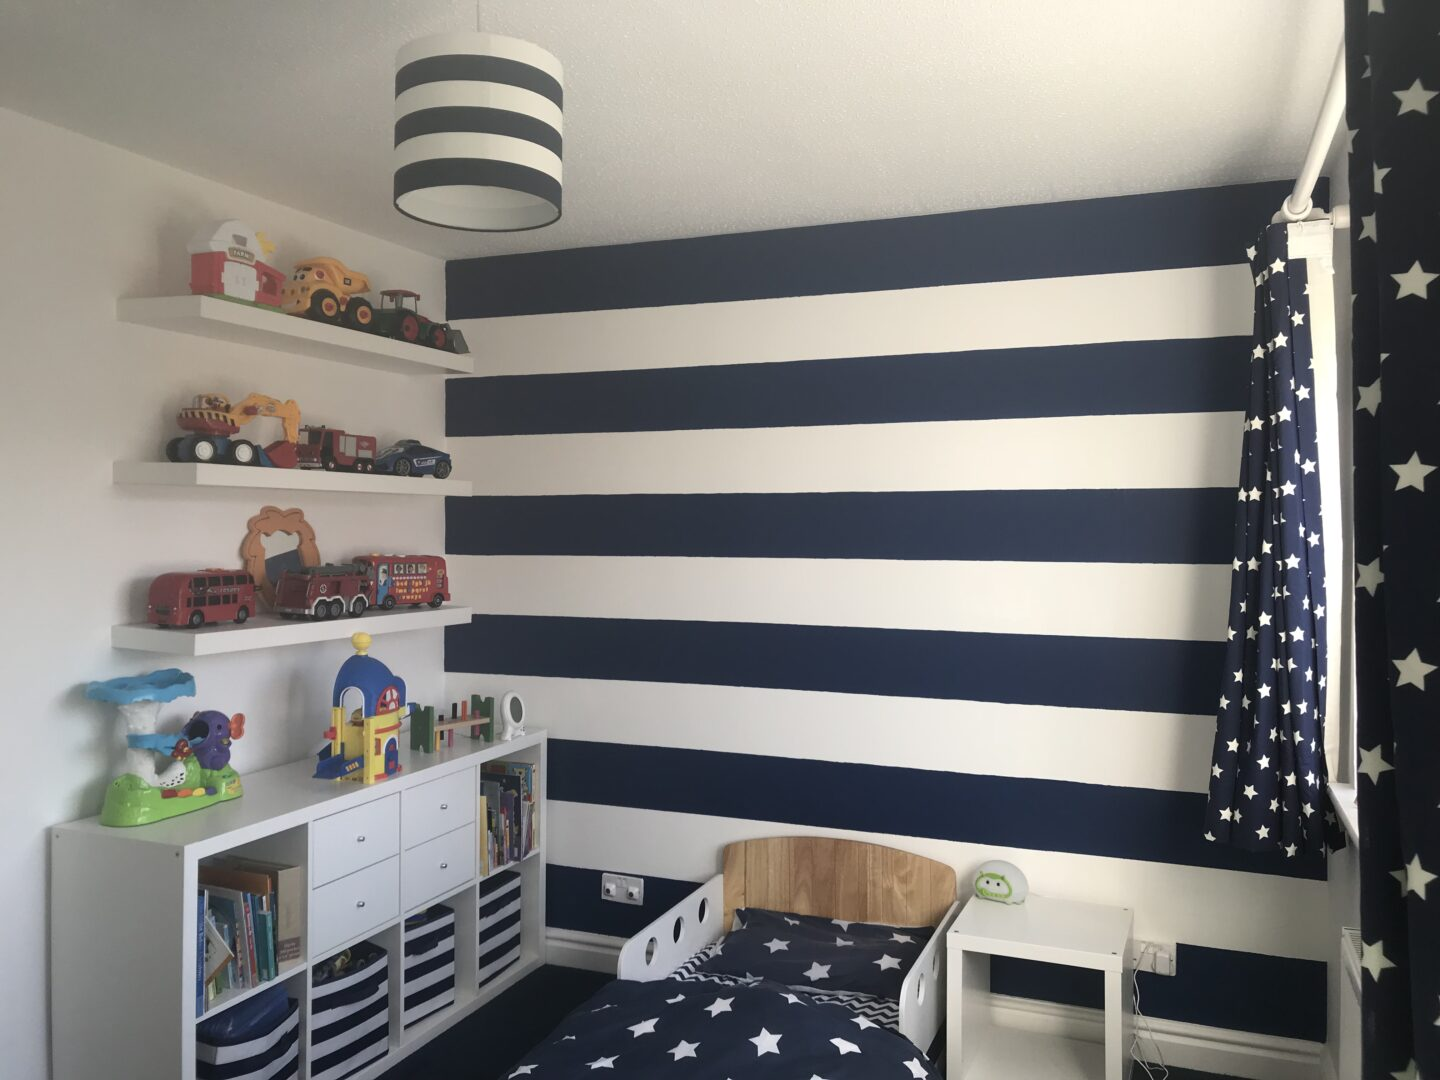 Nautical themed toddler bedroom showing striped navy and white walls, toddler bed, kallax unit and shelves